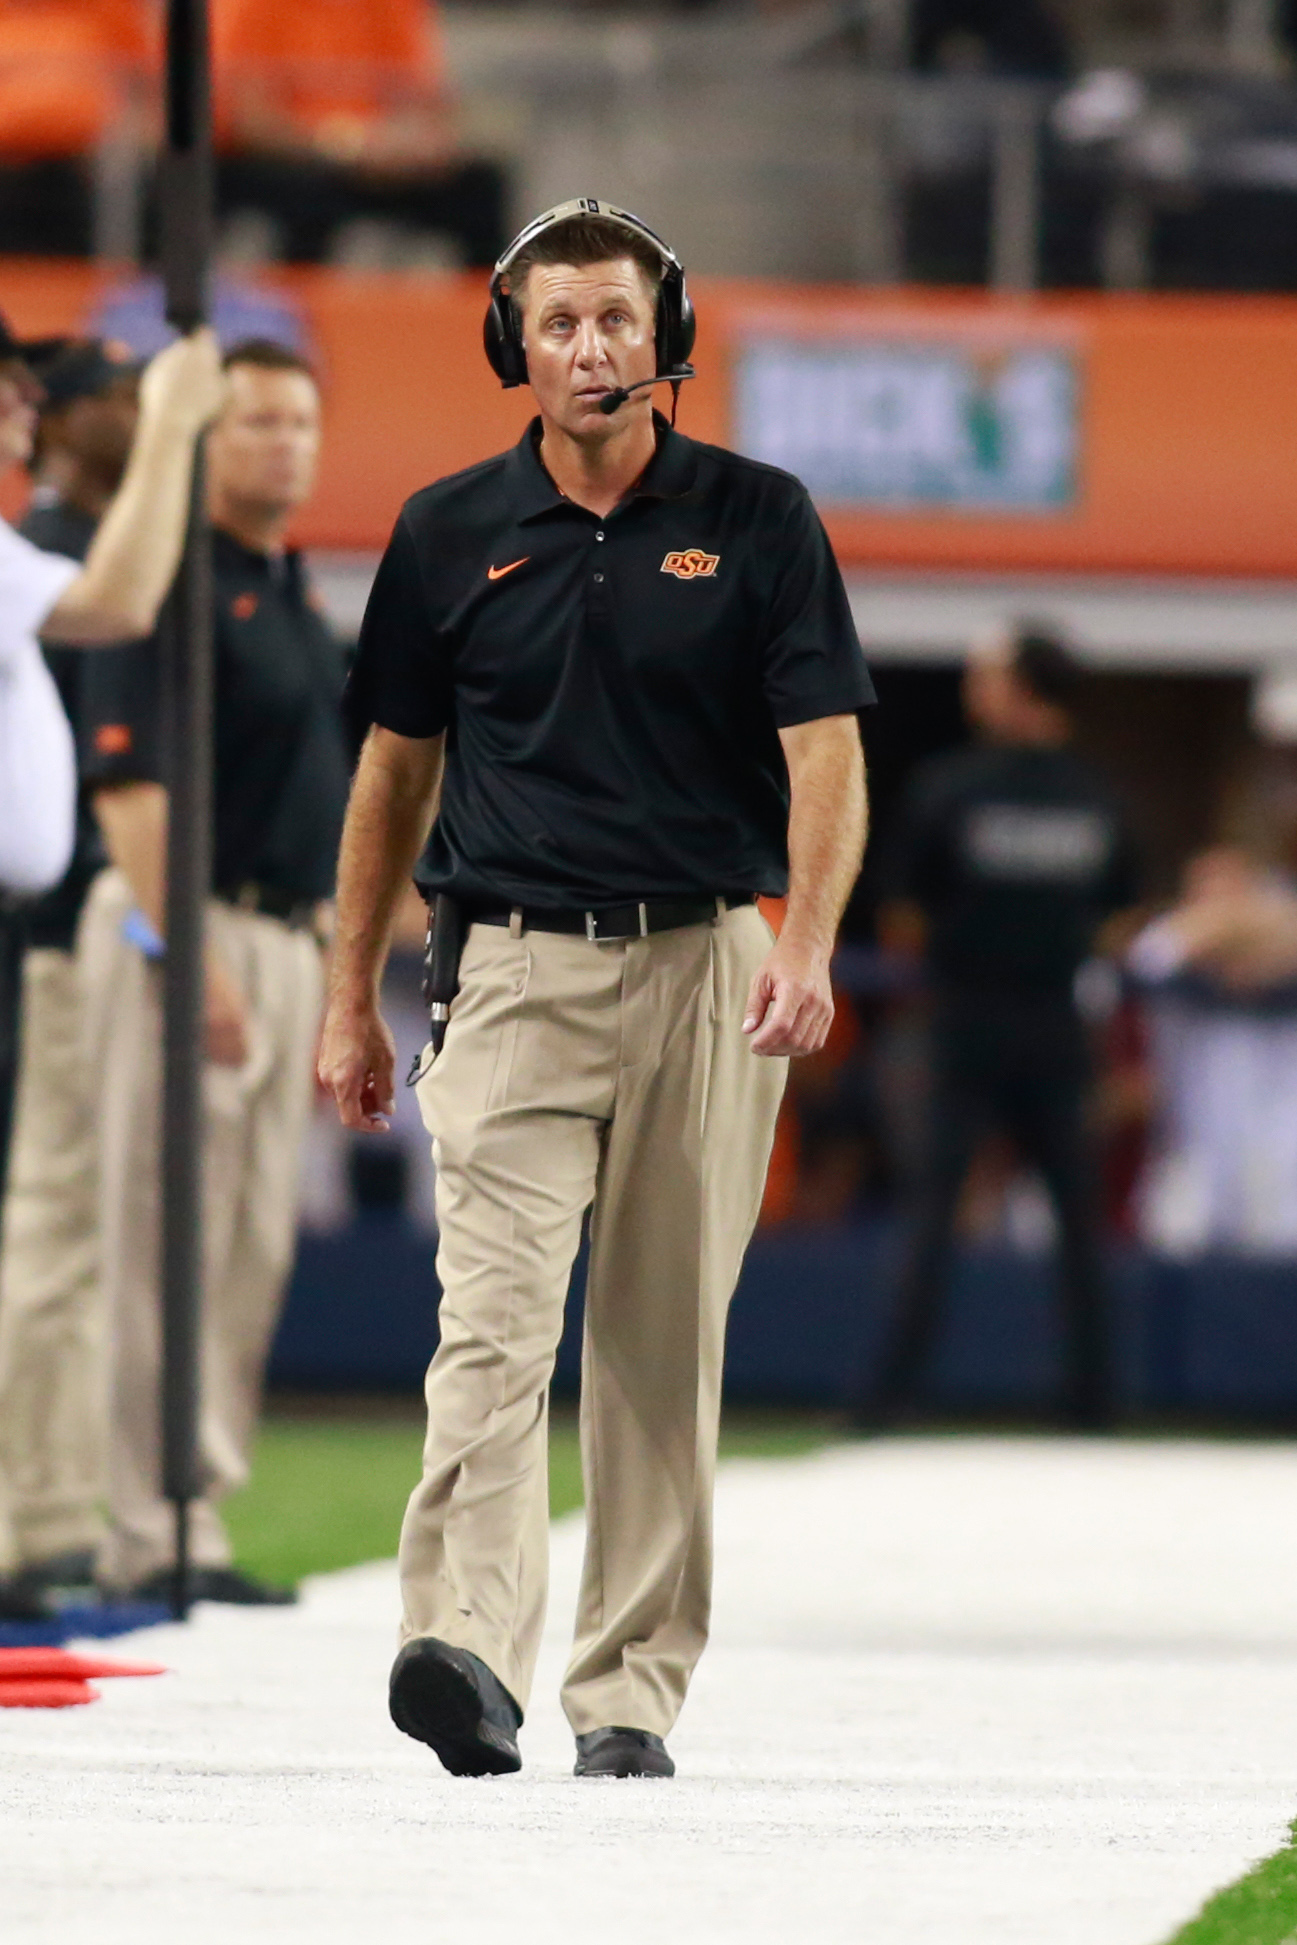 Oklahoma State head coach Mike Gundy 'pursuing' Florida job, per report